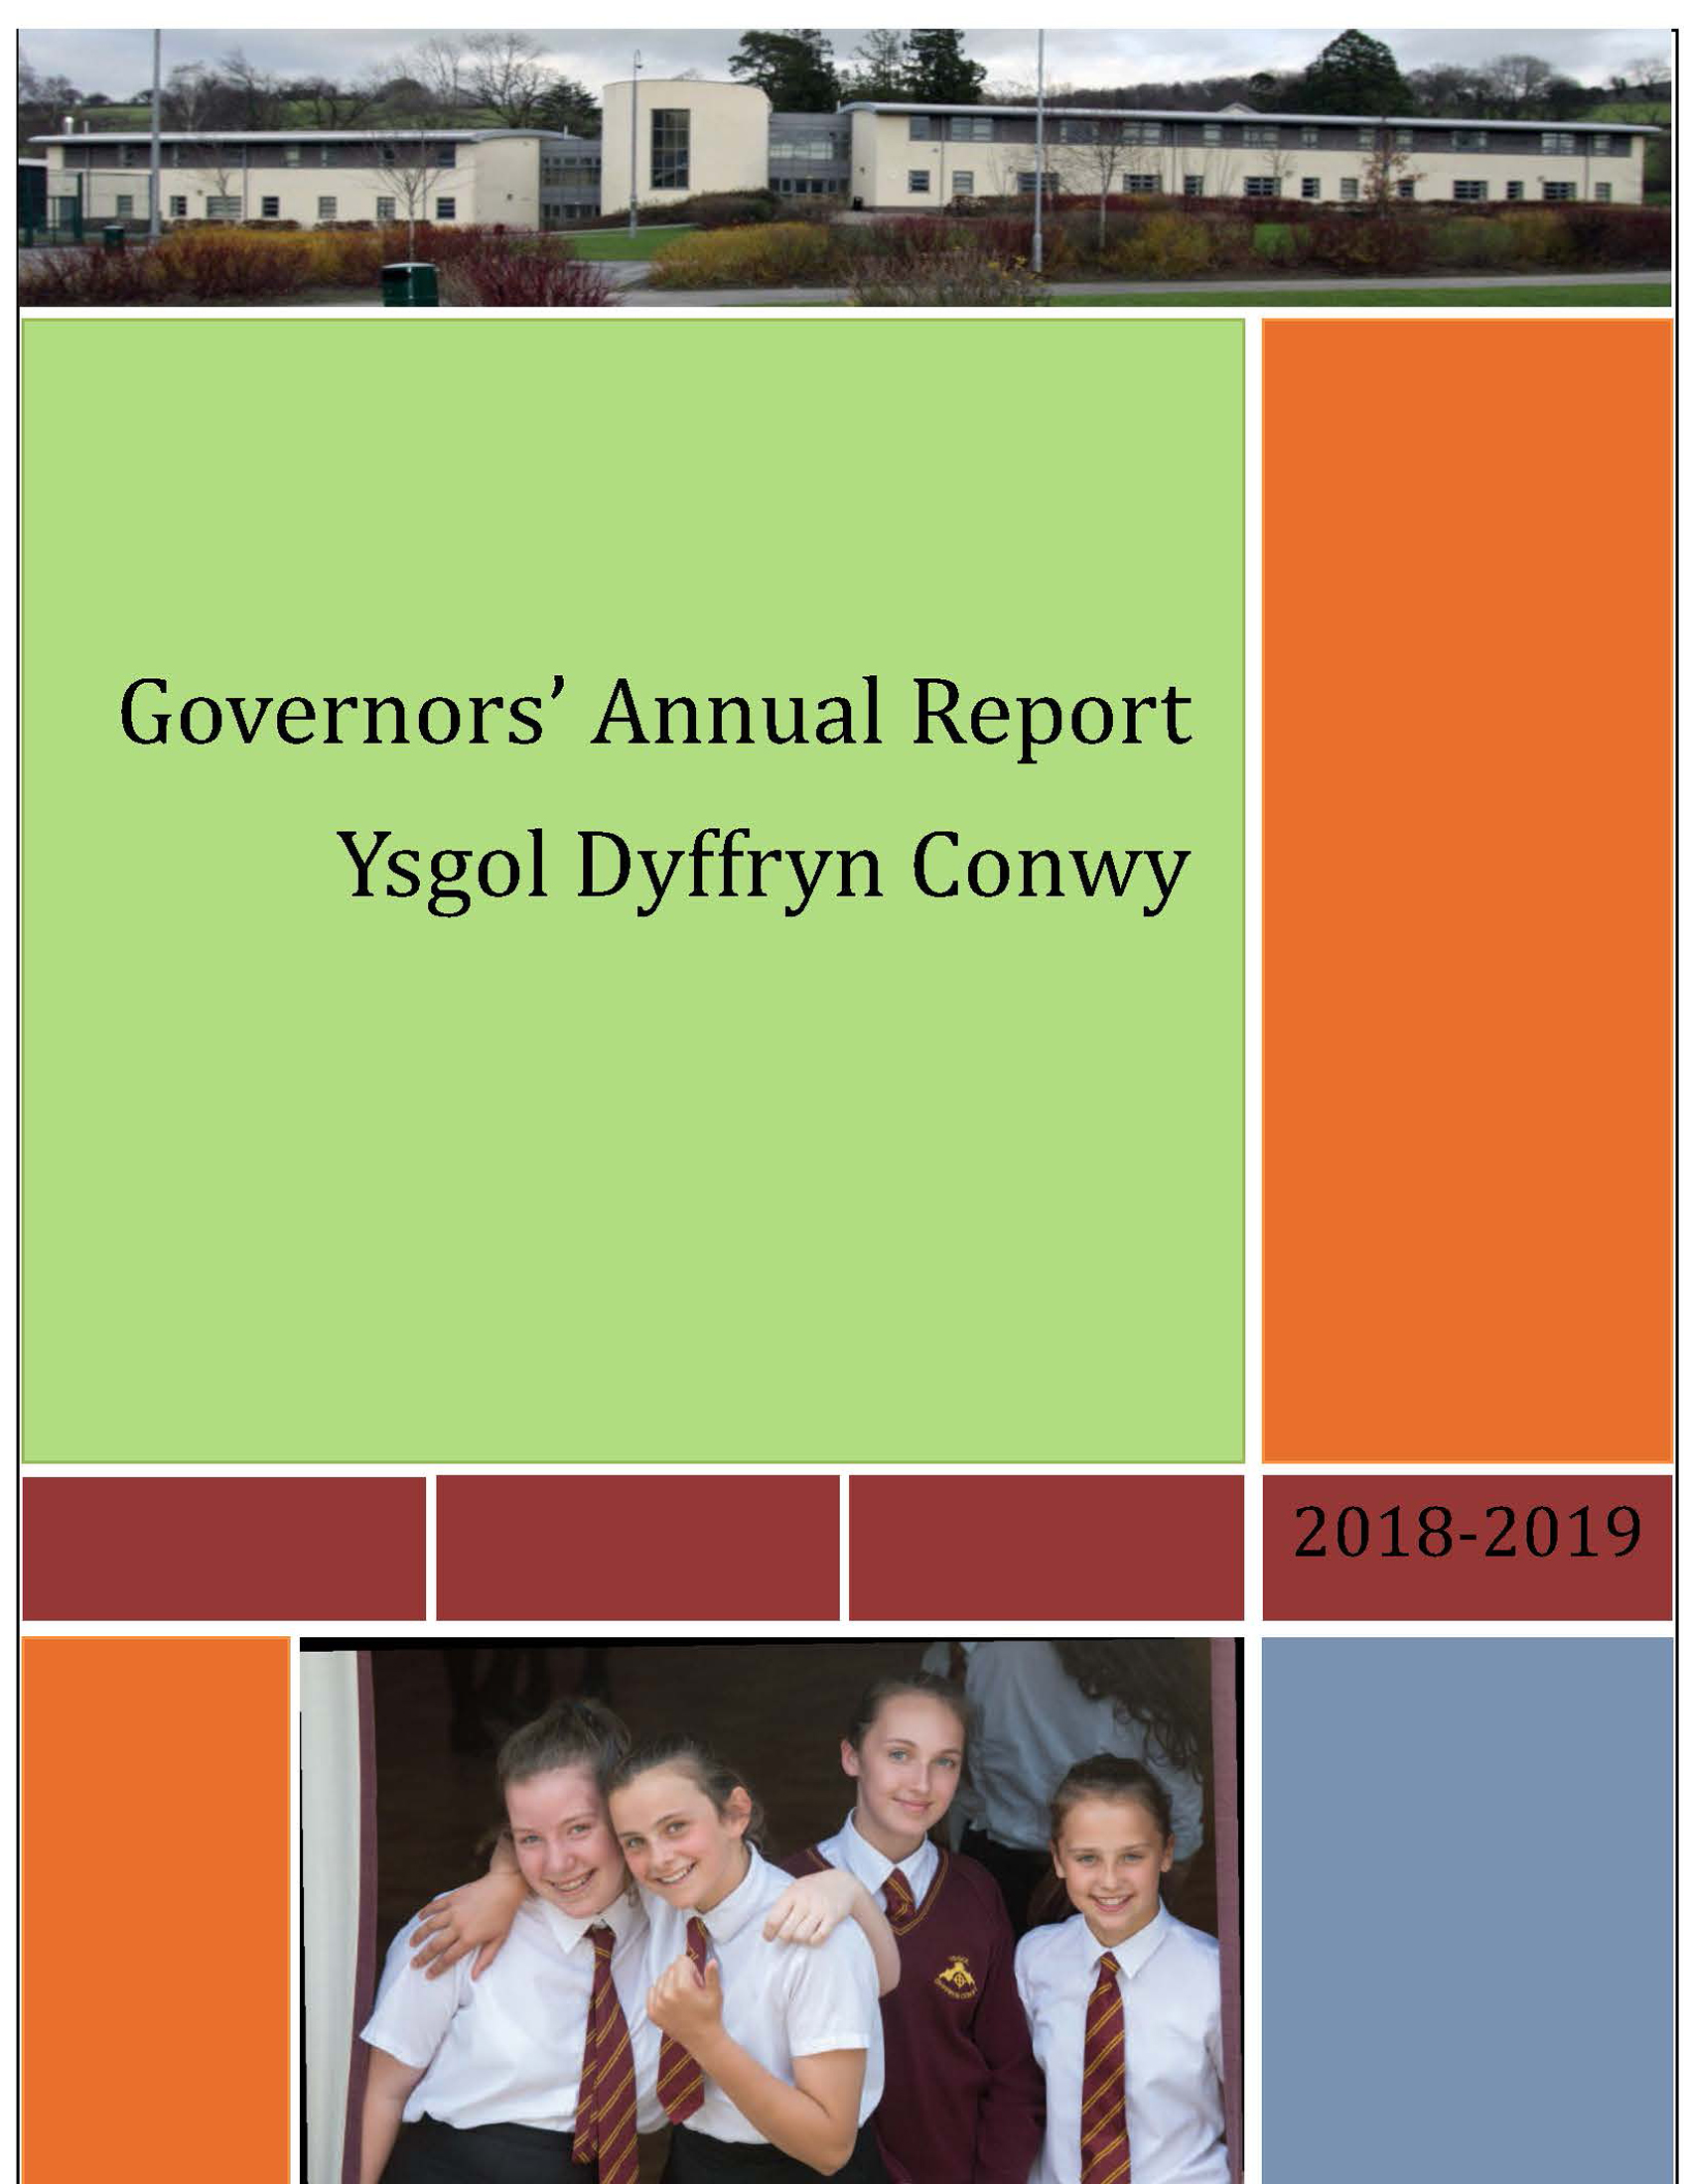 Governor's Annual Report to Parents 2017 / 2018